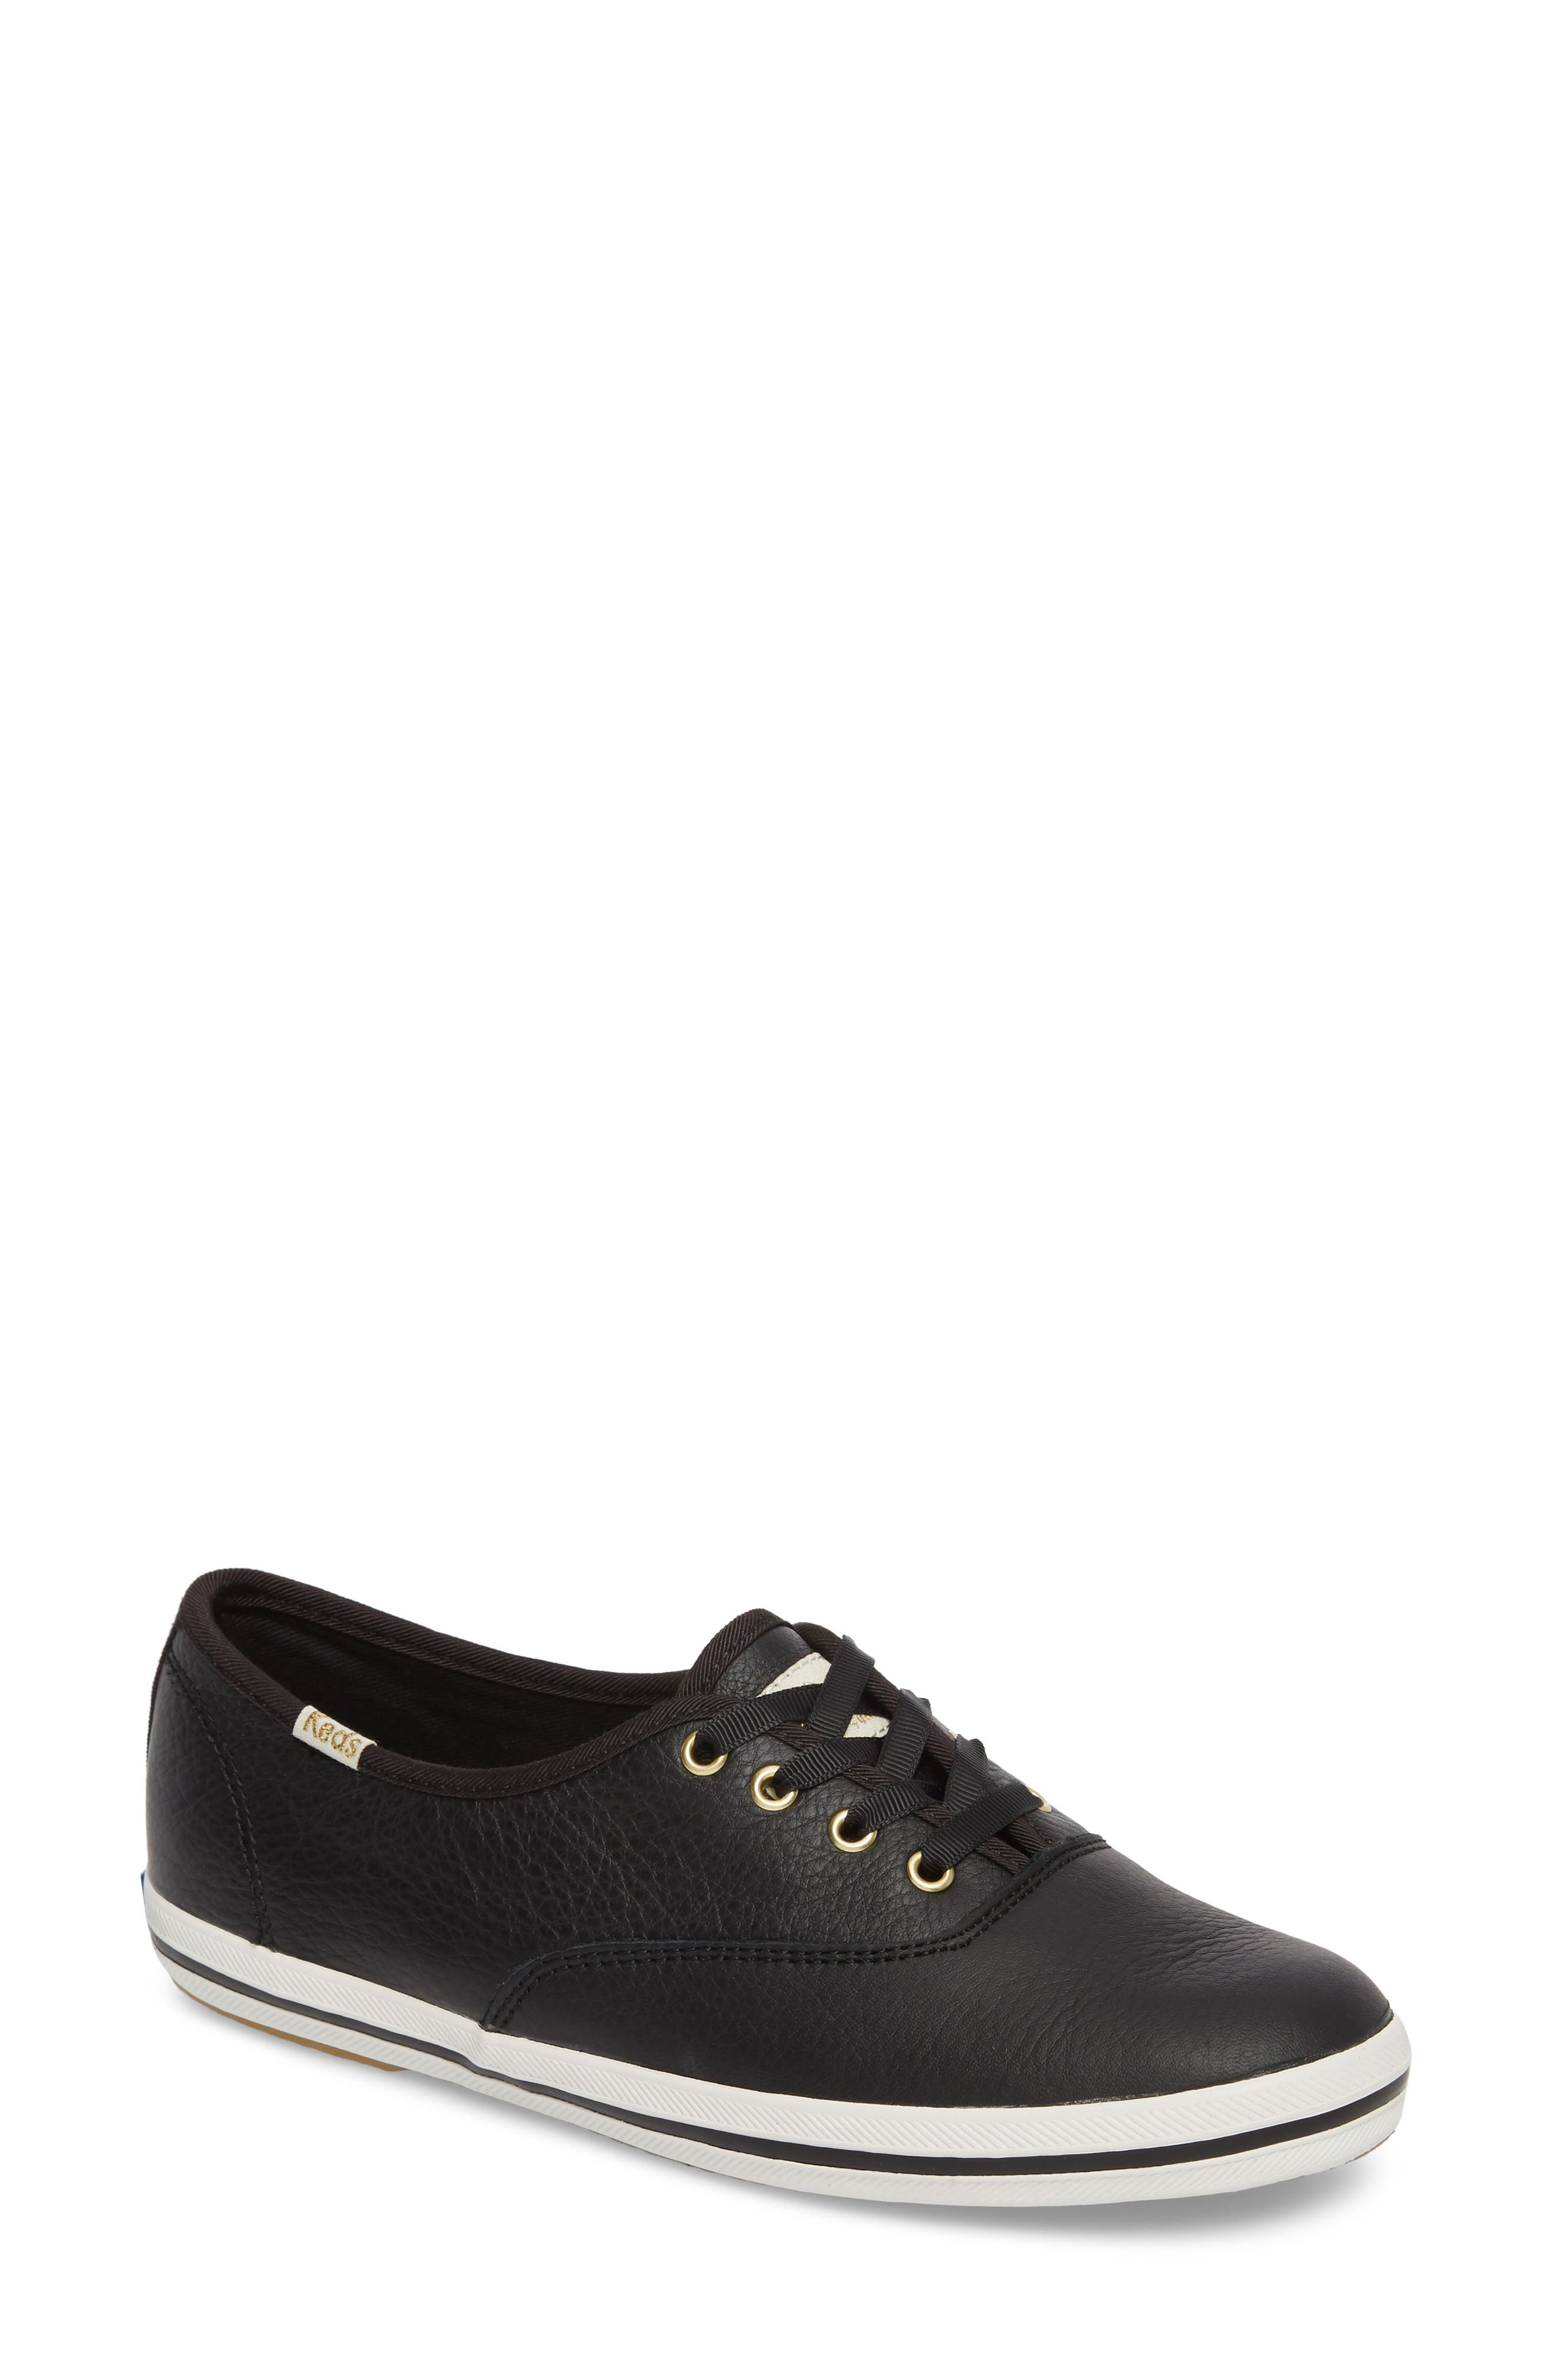 Main Image - Keds® for kate spade new york leather sneaker (Women)